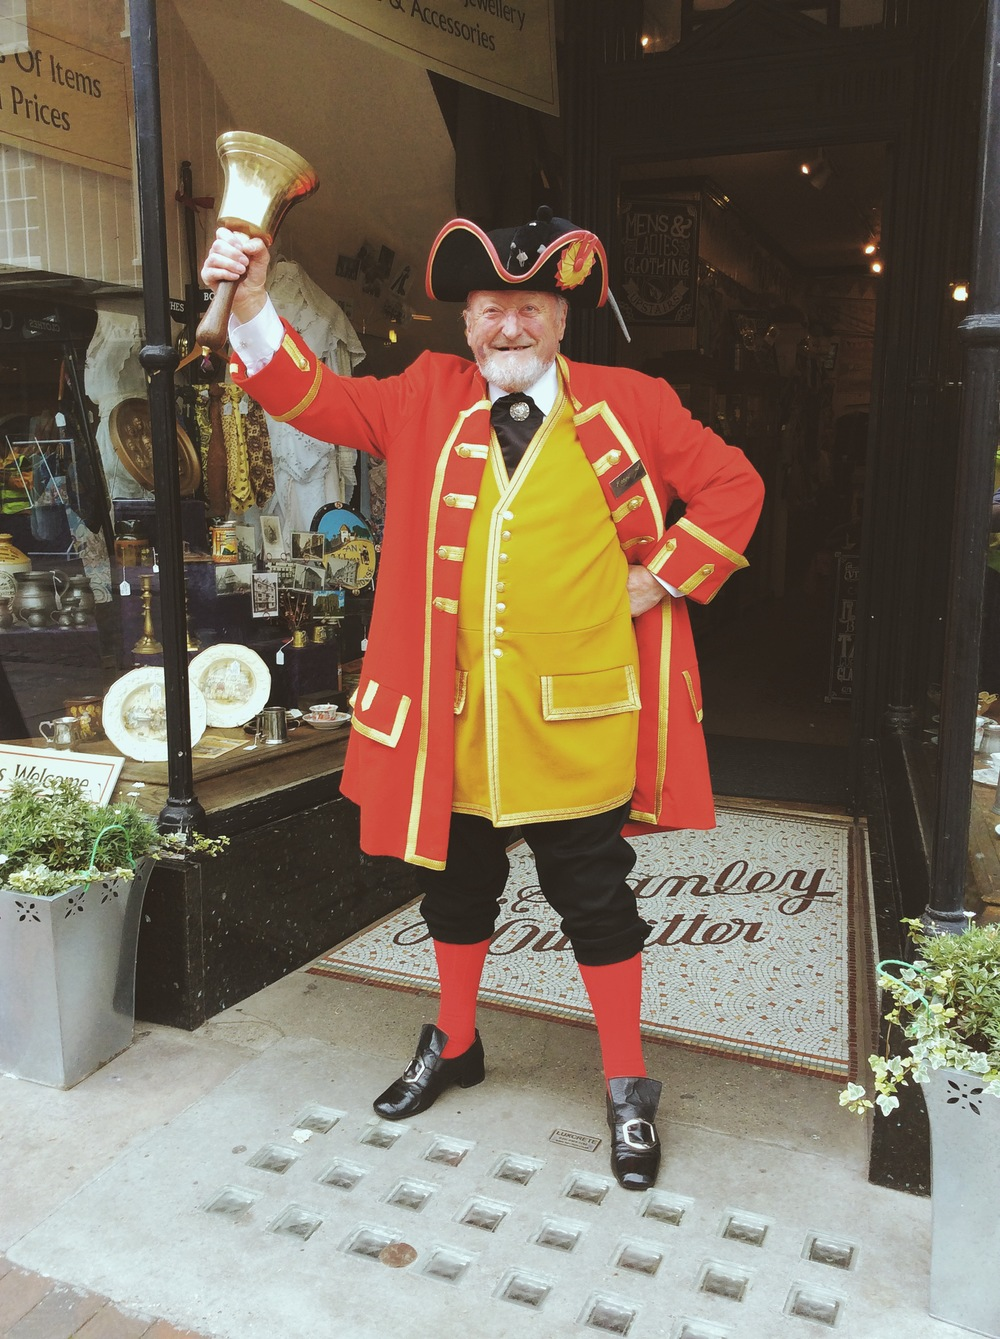 Mr Robin Burford - Rochester's wonderful Town Crier